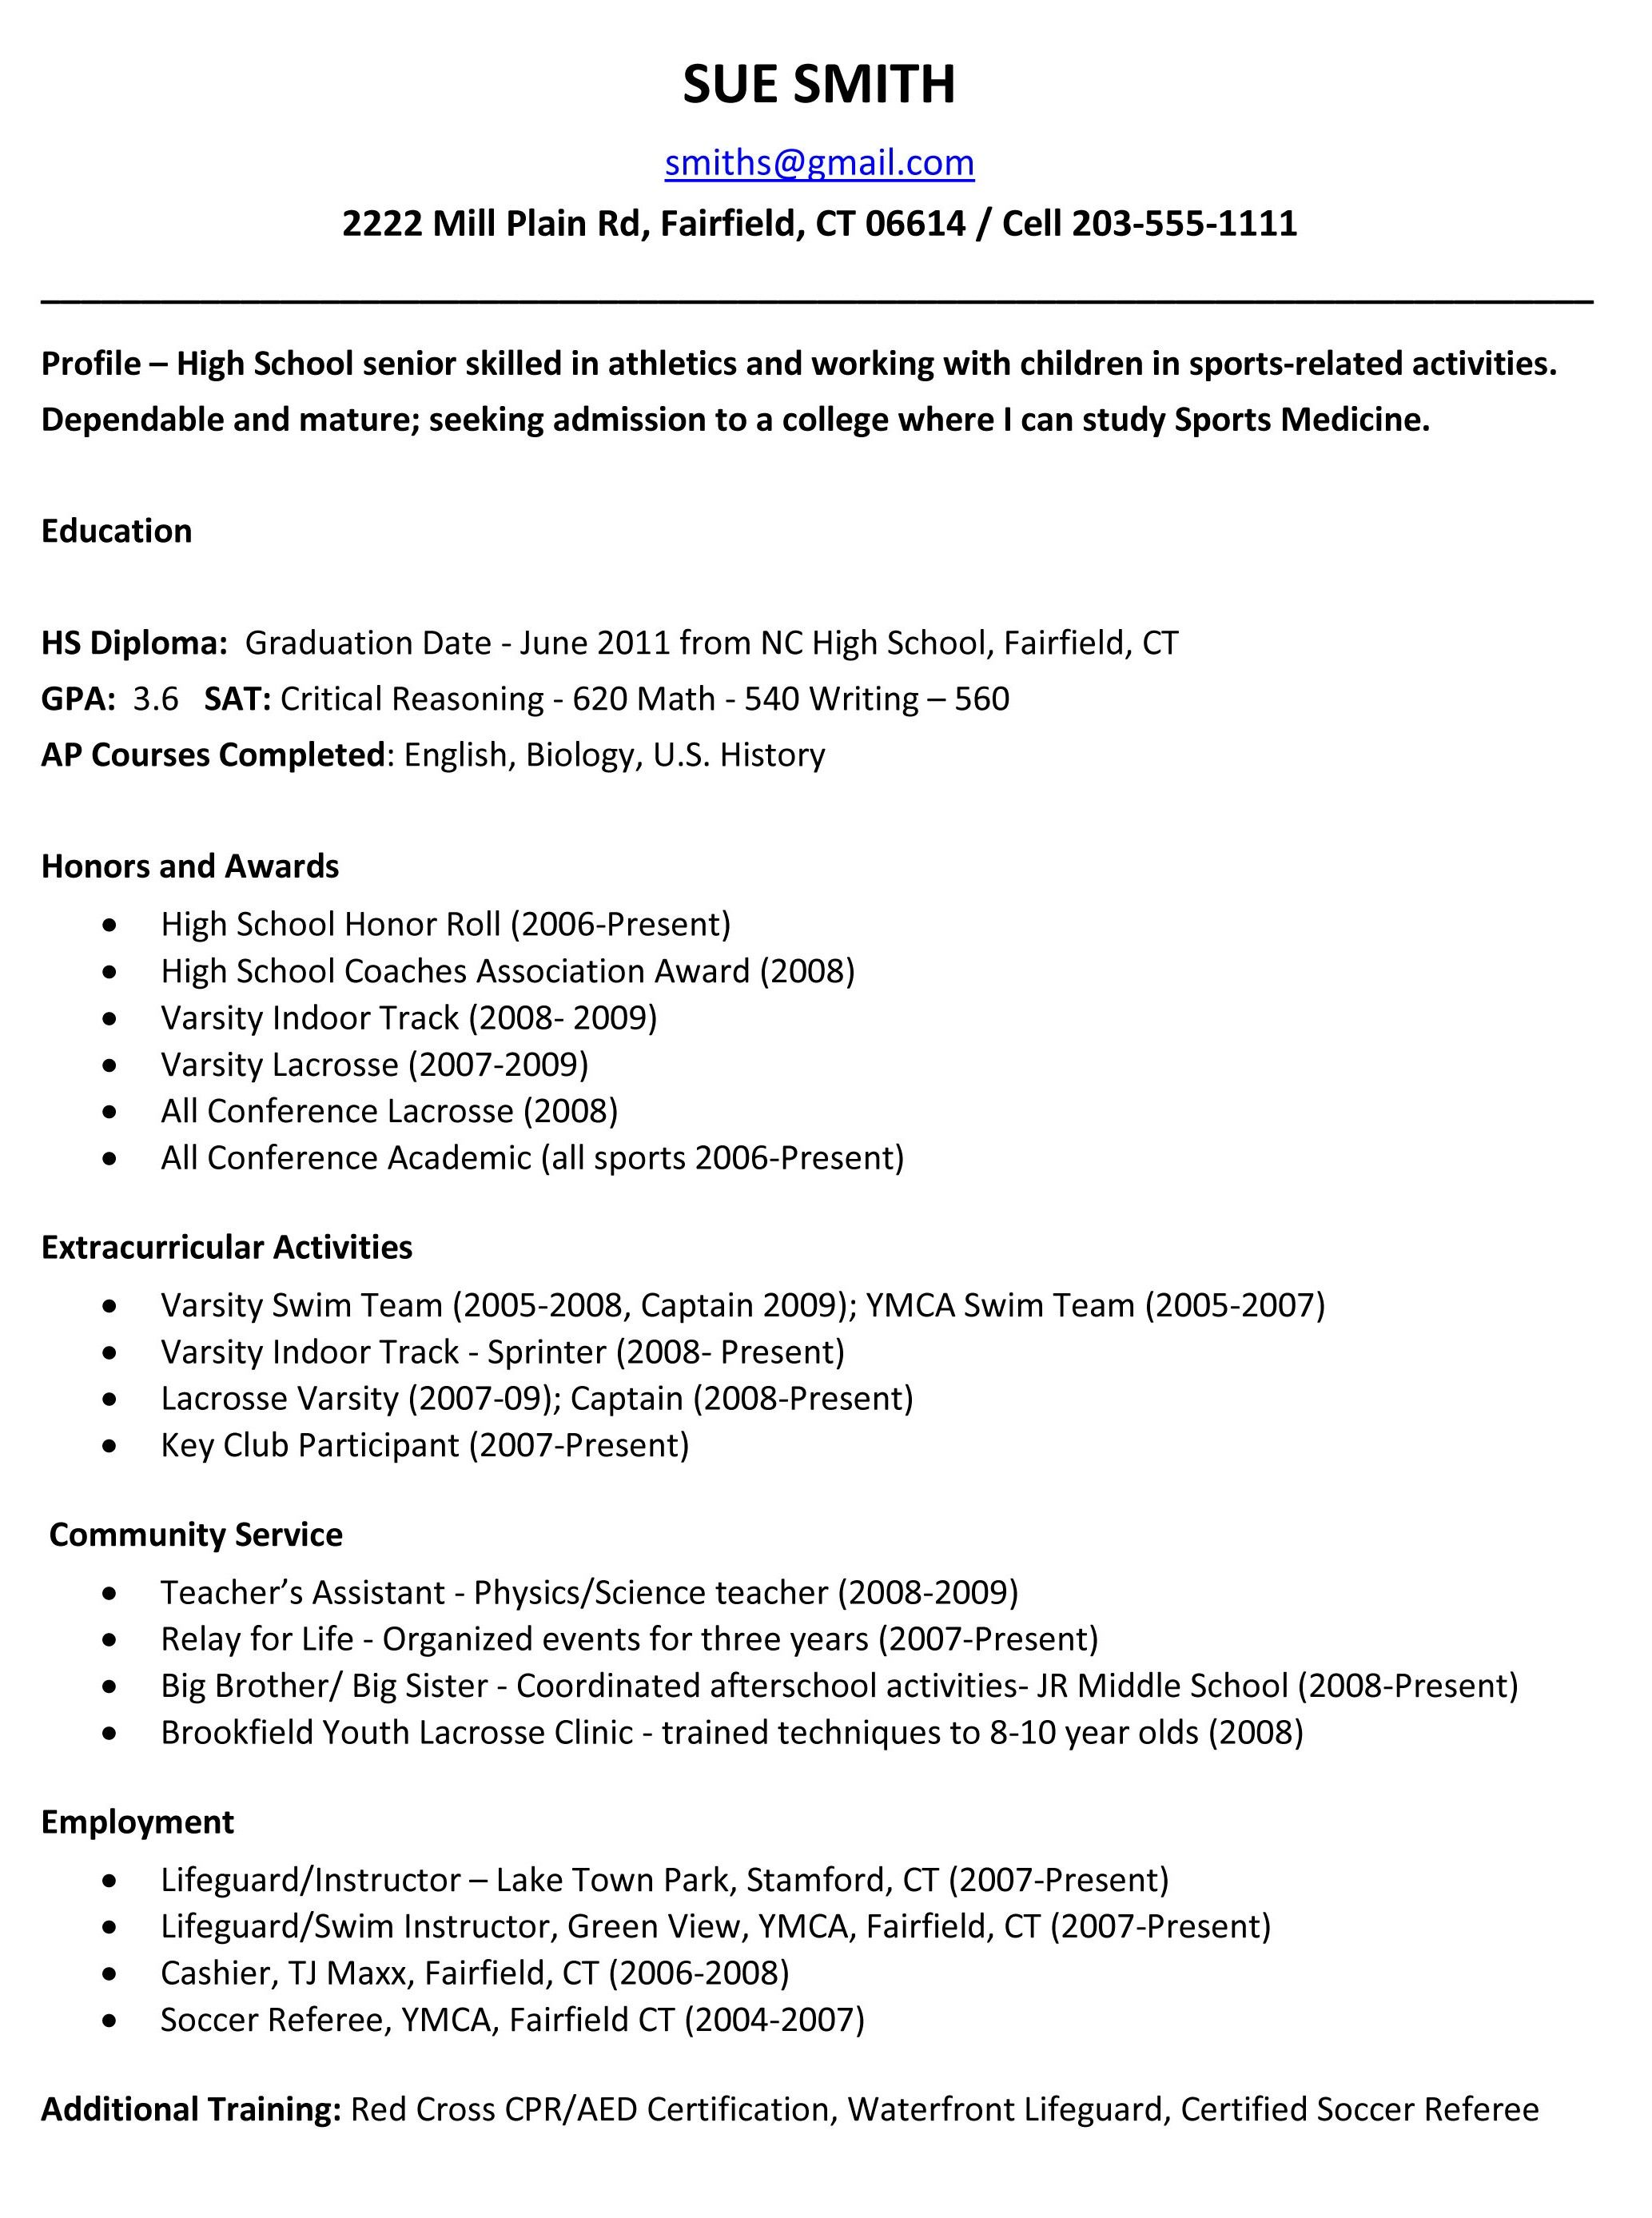 Marvelous Example Resume For High School Students For College Applications School  Resume Templateregularmidwesterners.com | Regularmidwesterners Inside Resume For College Application Template